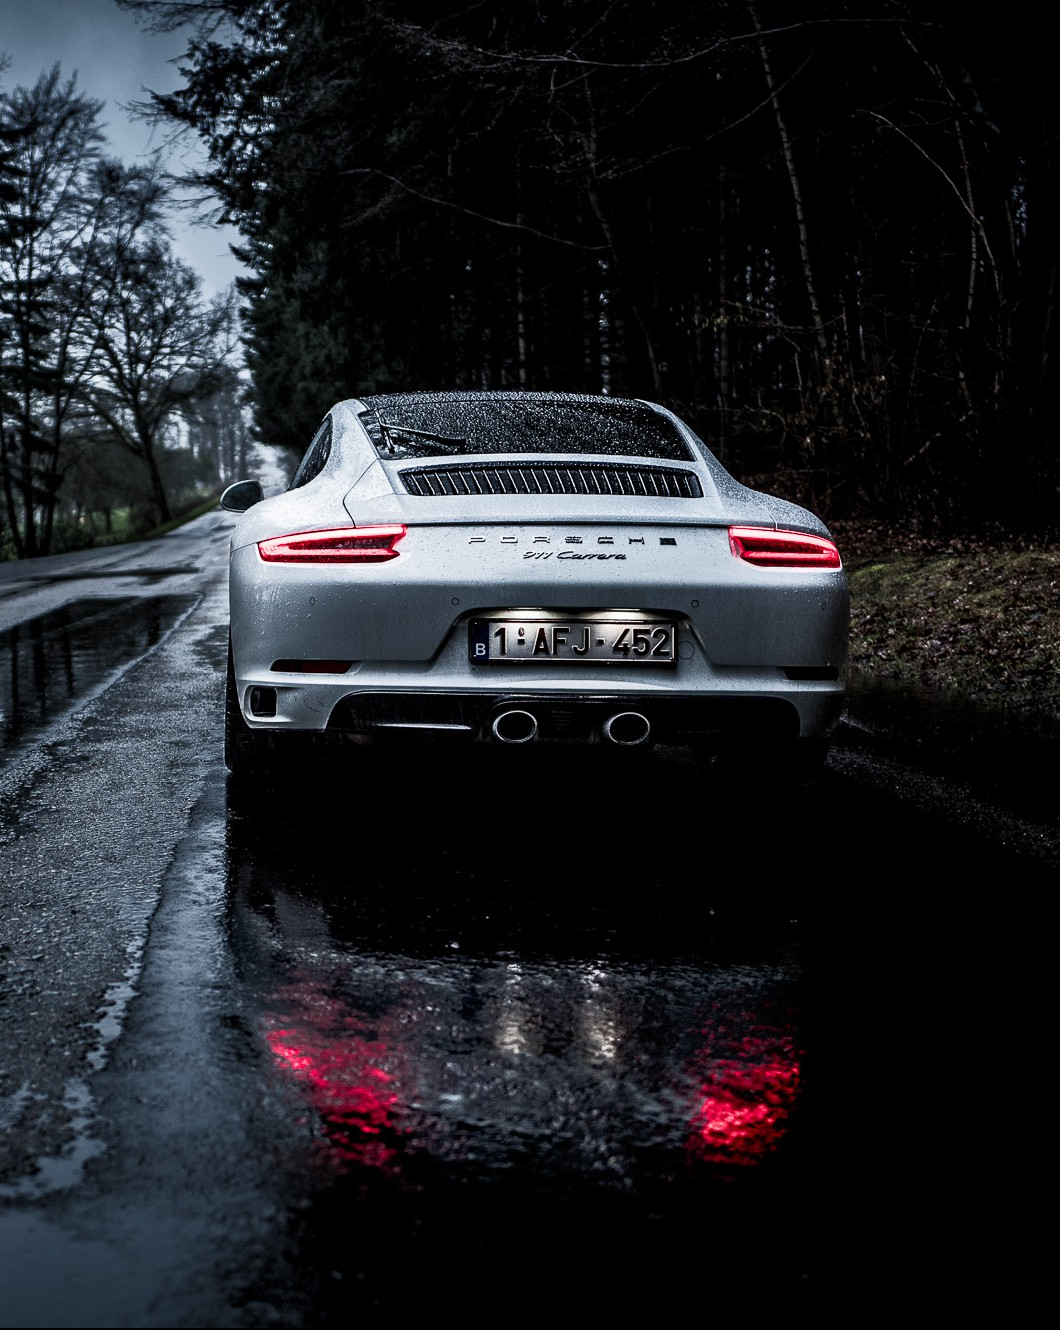 48 hours with the new Porsche 911